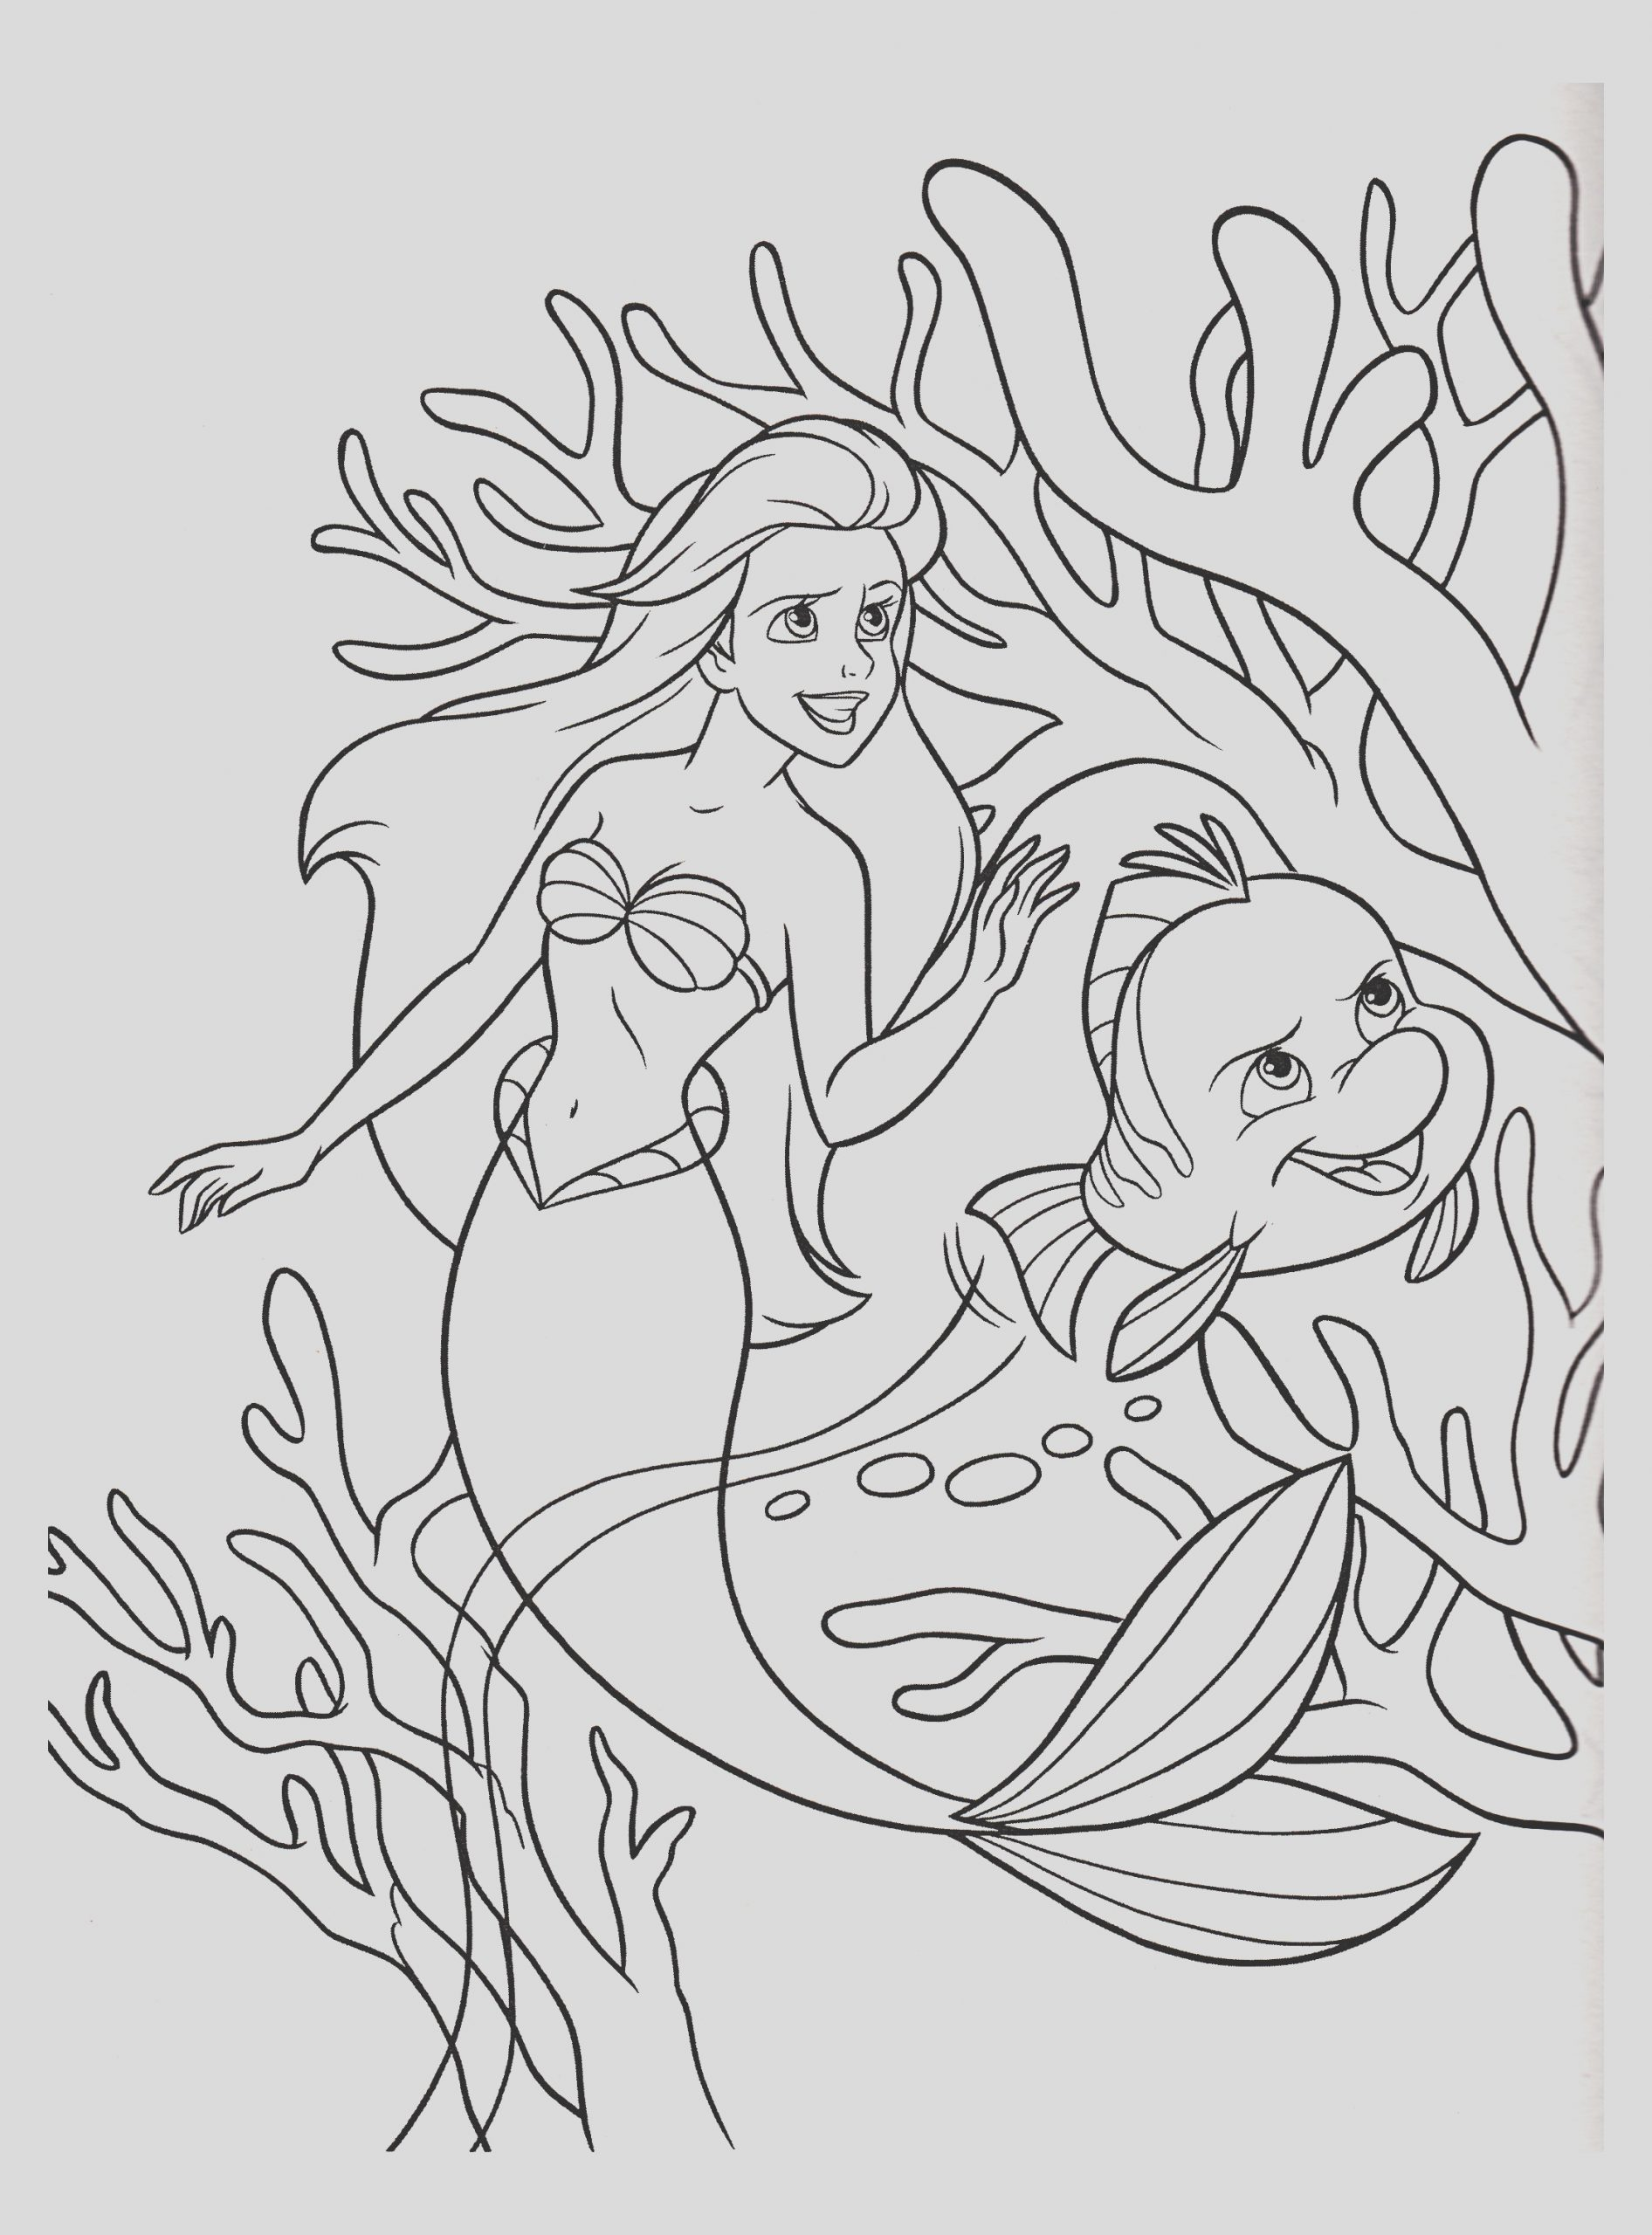 image=the little mermaid Coloring for kids the little mermaid 1